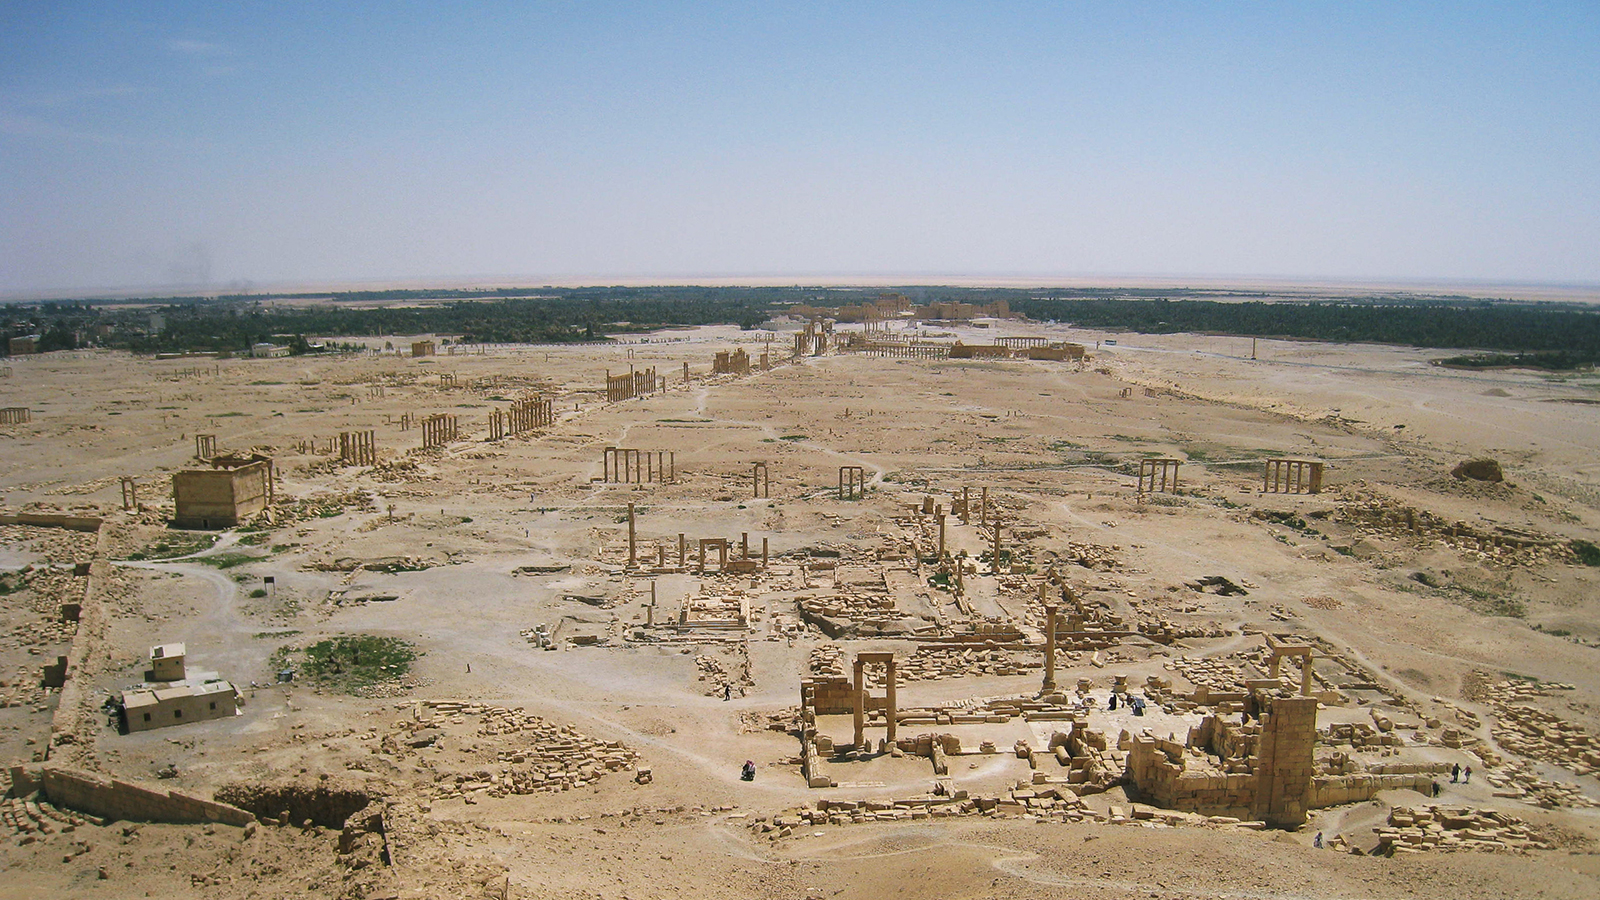 The Project on The Archaeological Research Project on the Sites of Palmyra